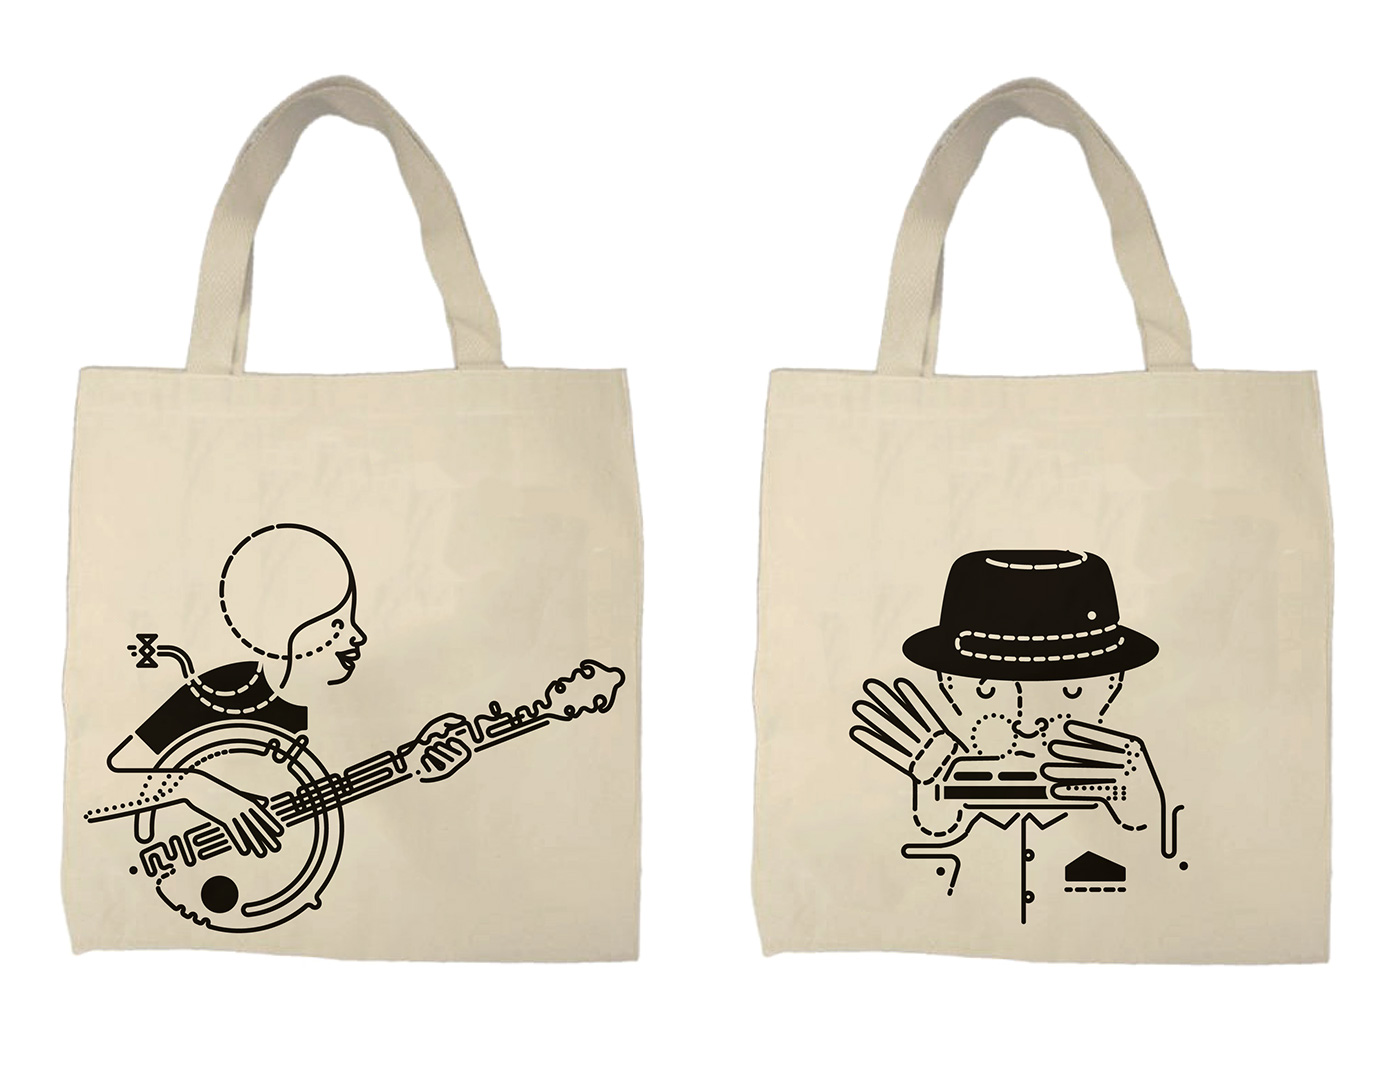 The Guardian - Festival tote bag design pitch on Behance